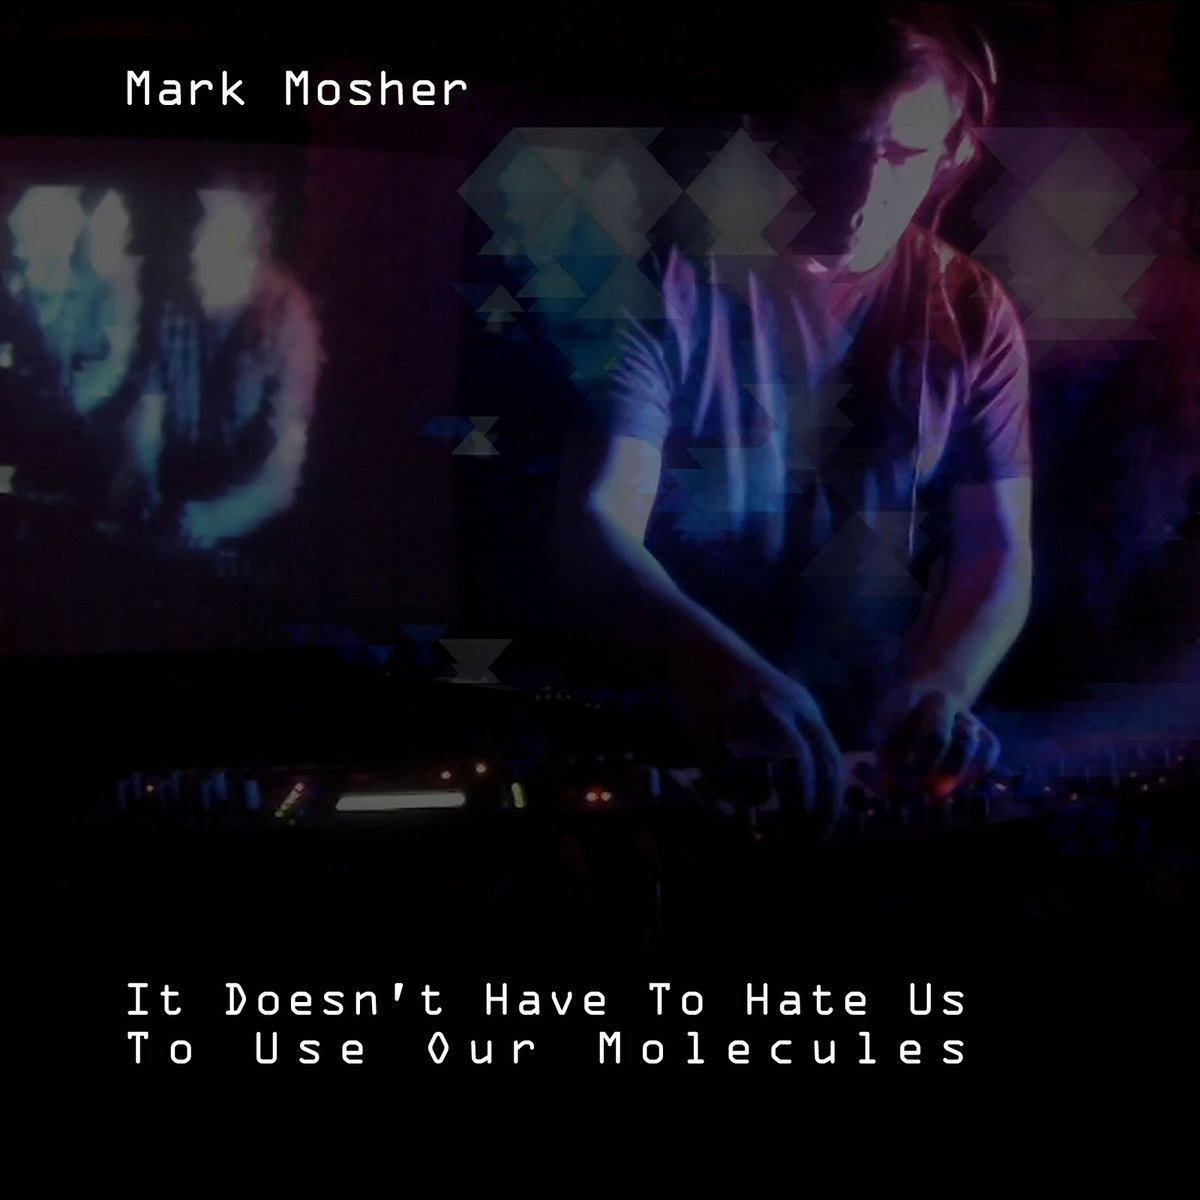 It Doesn't Have To Hate Us To Use Our Molecules by Mark Mosher